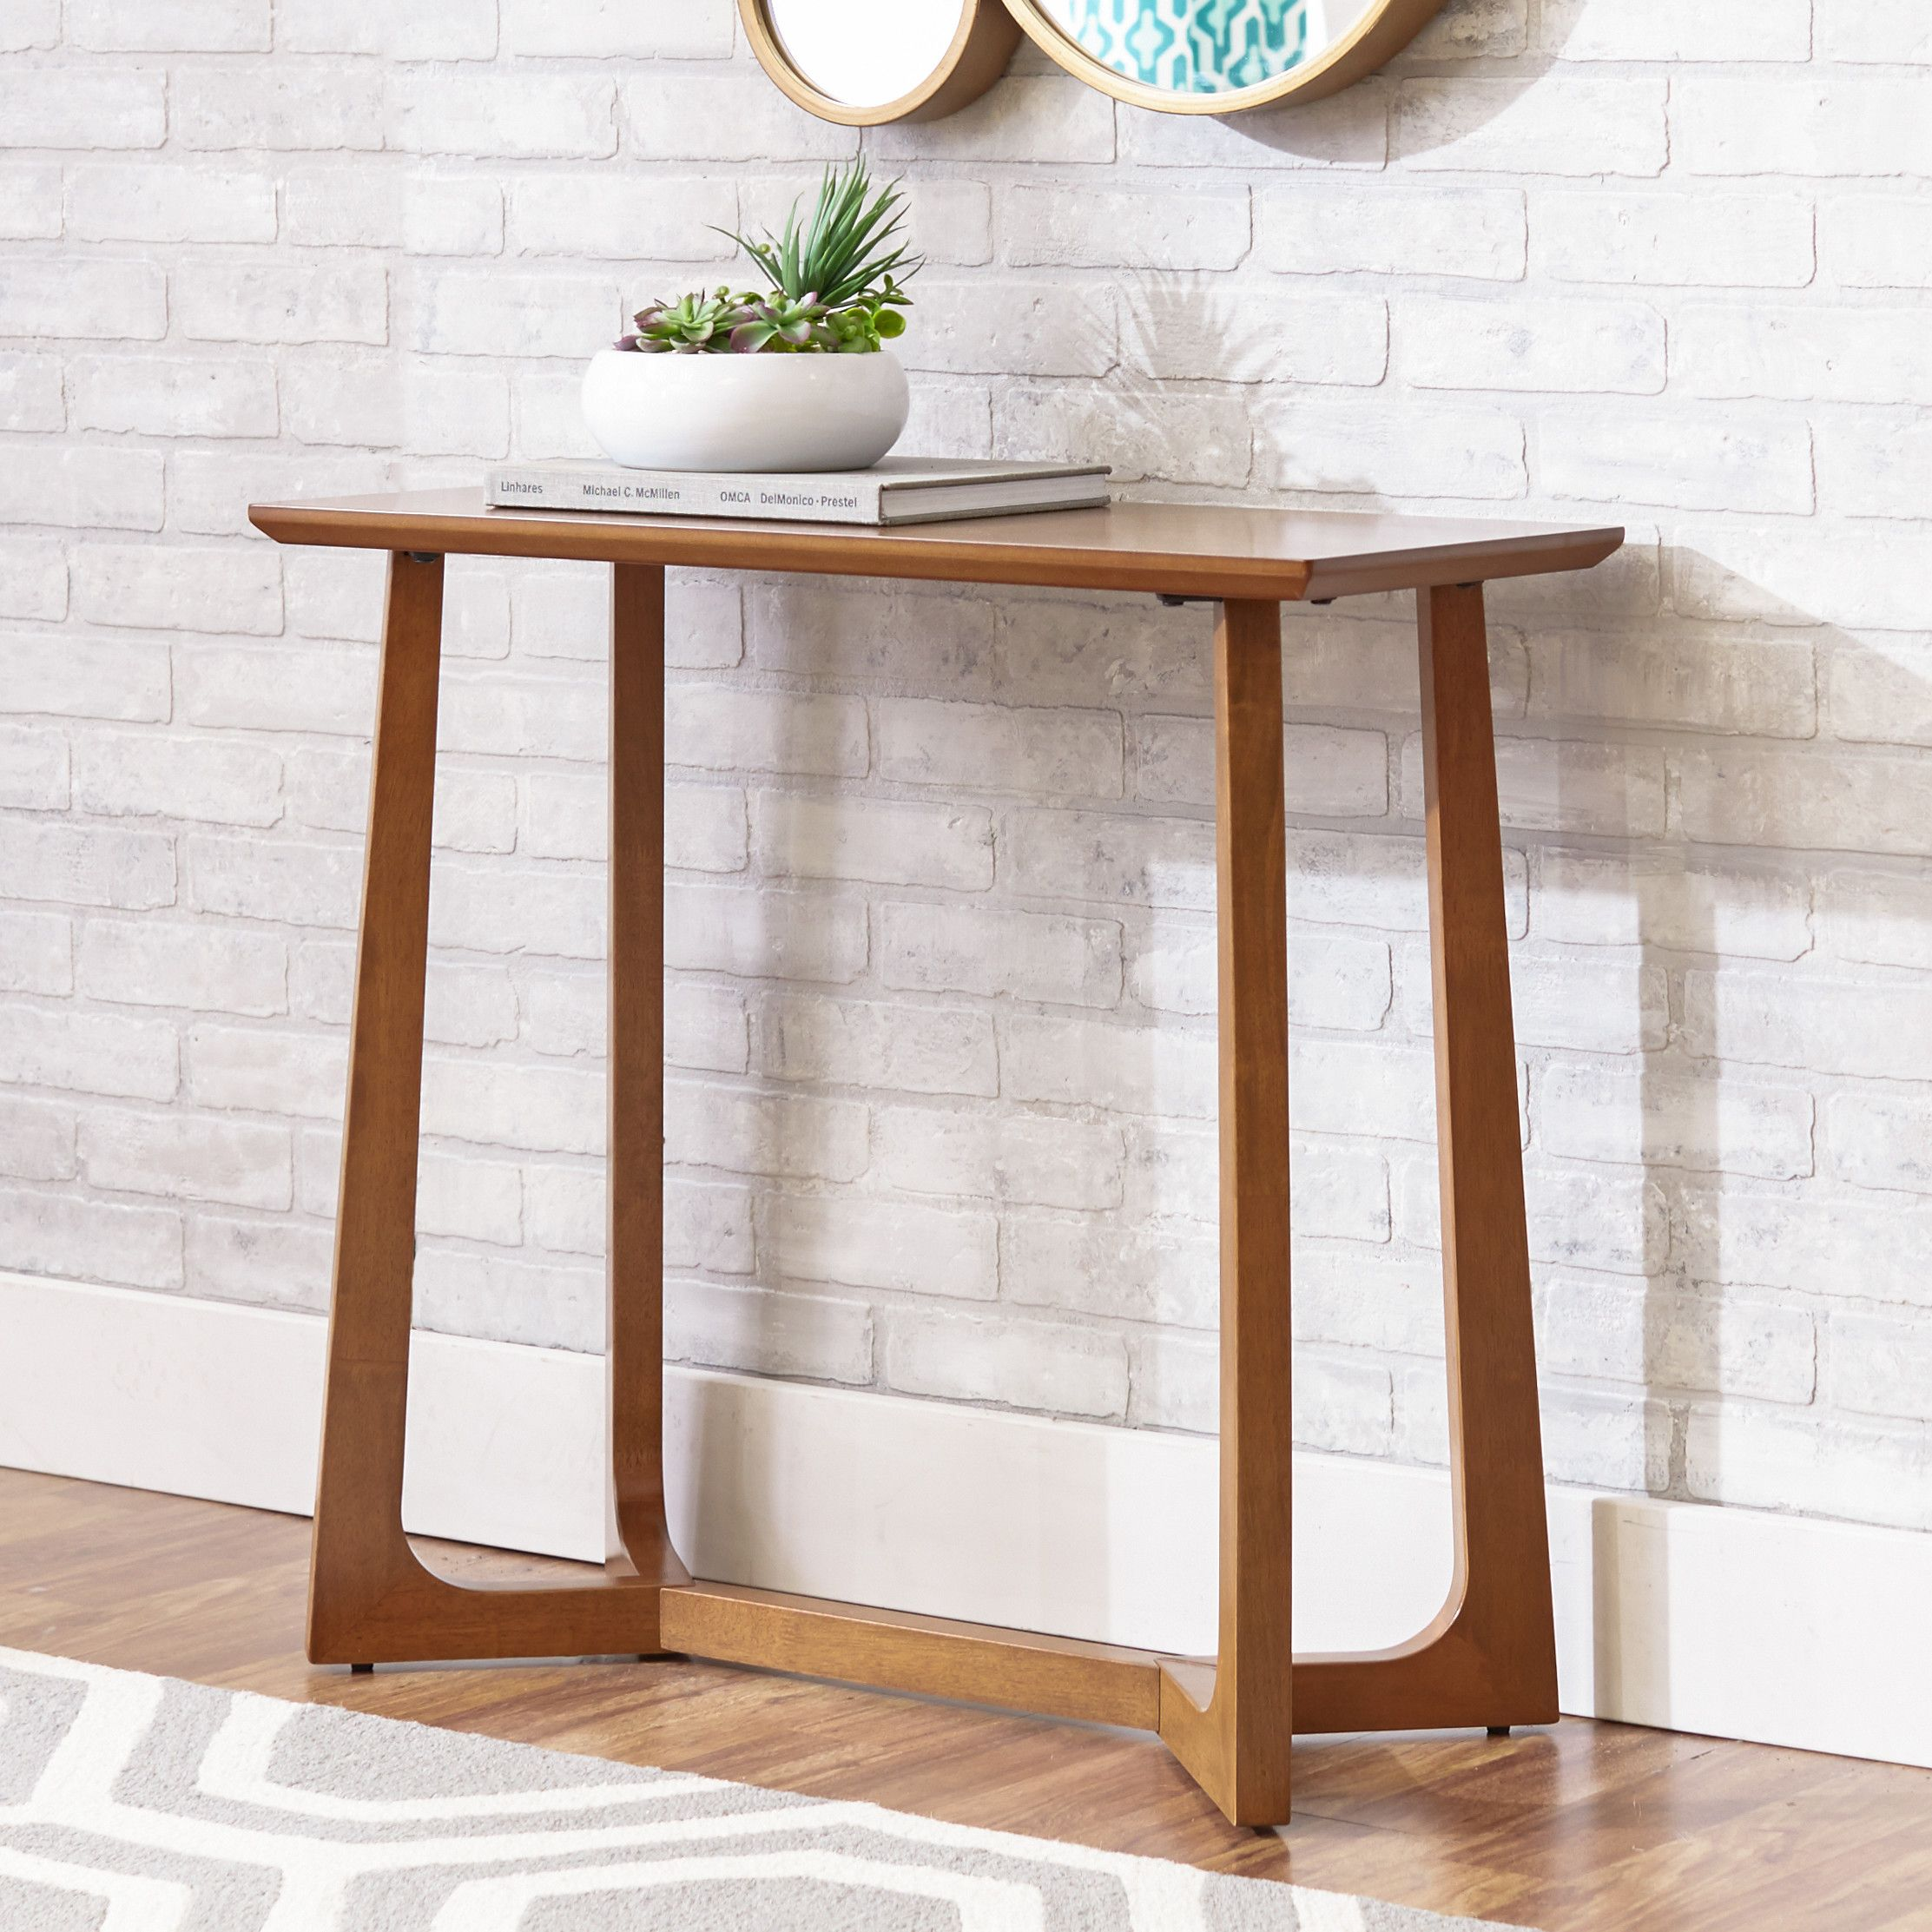 wood uk tables with image furniture of for table small thin console black drawers espresso